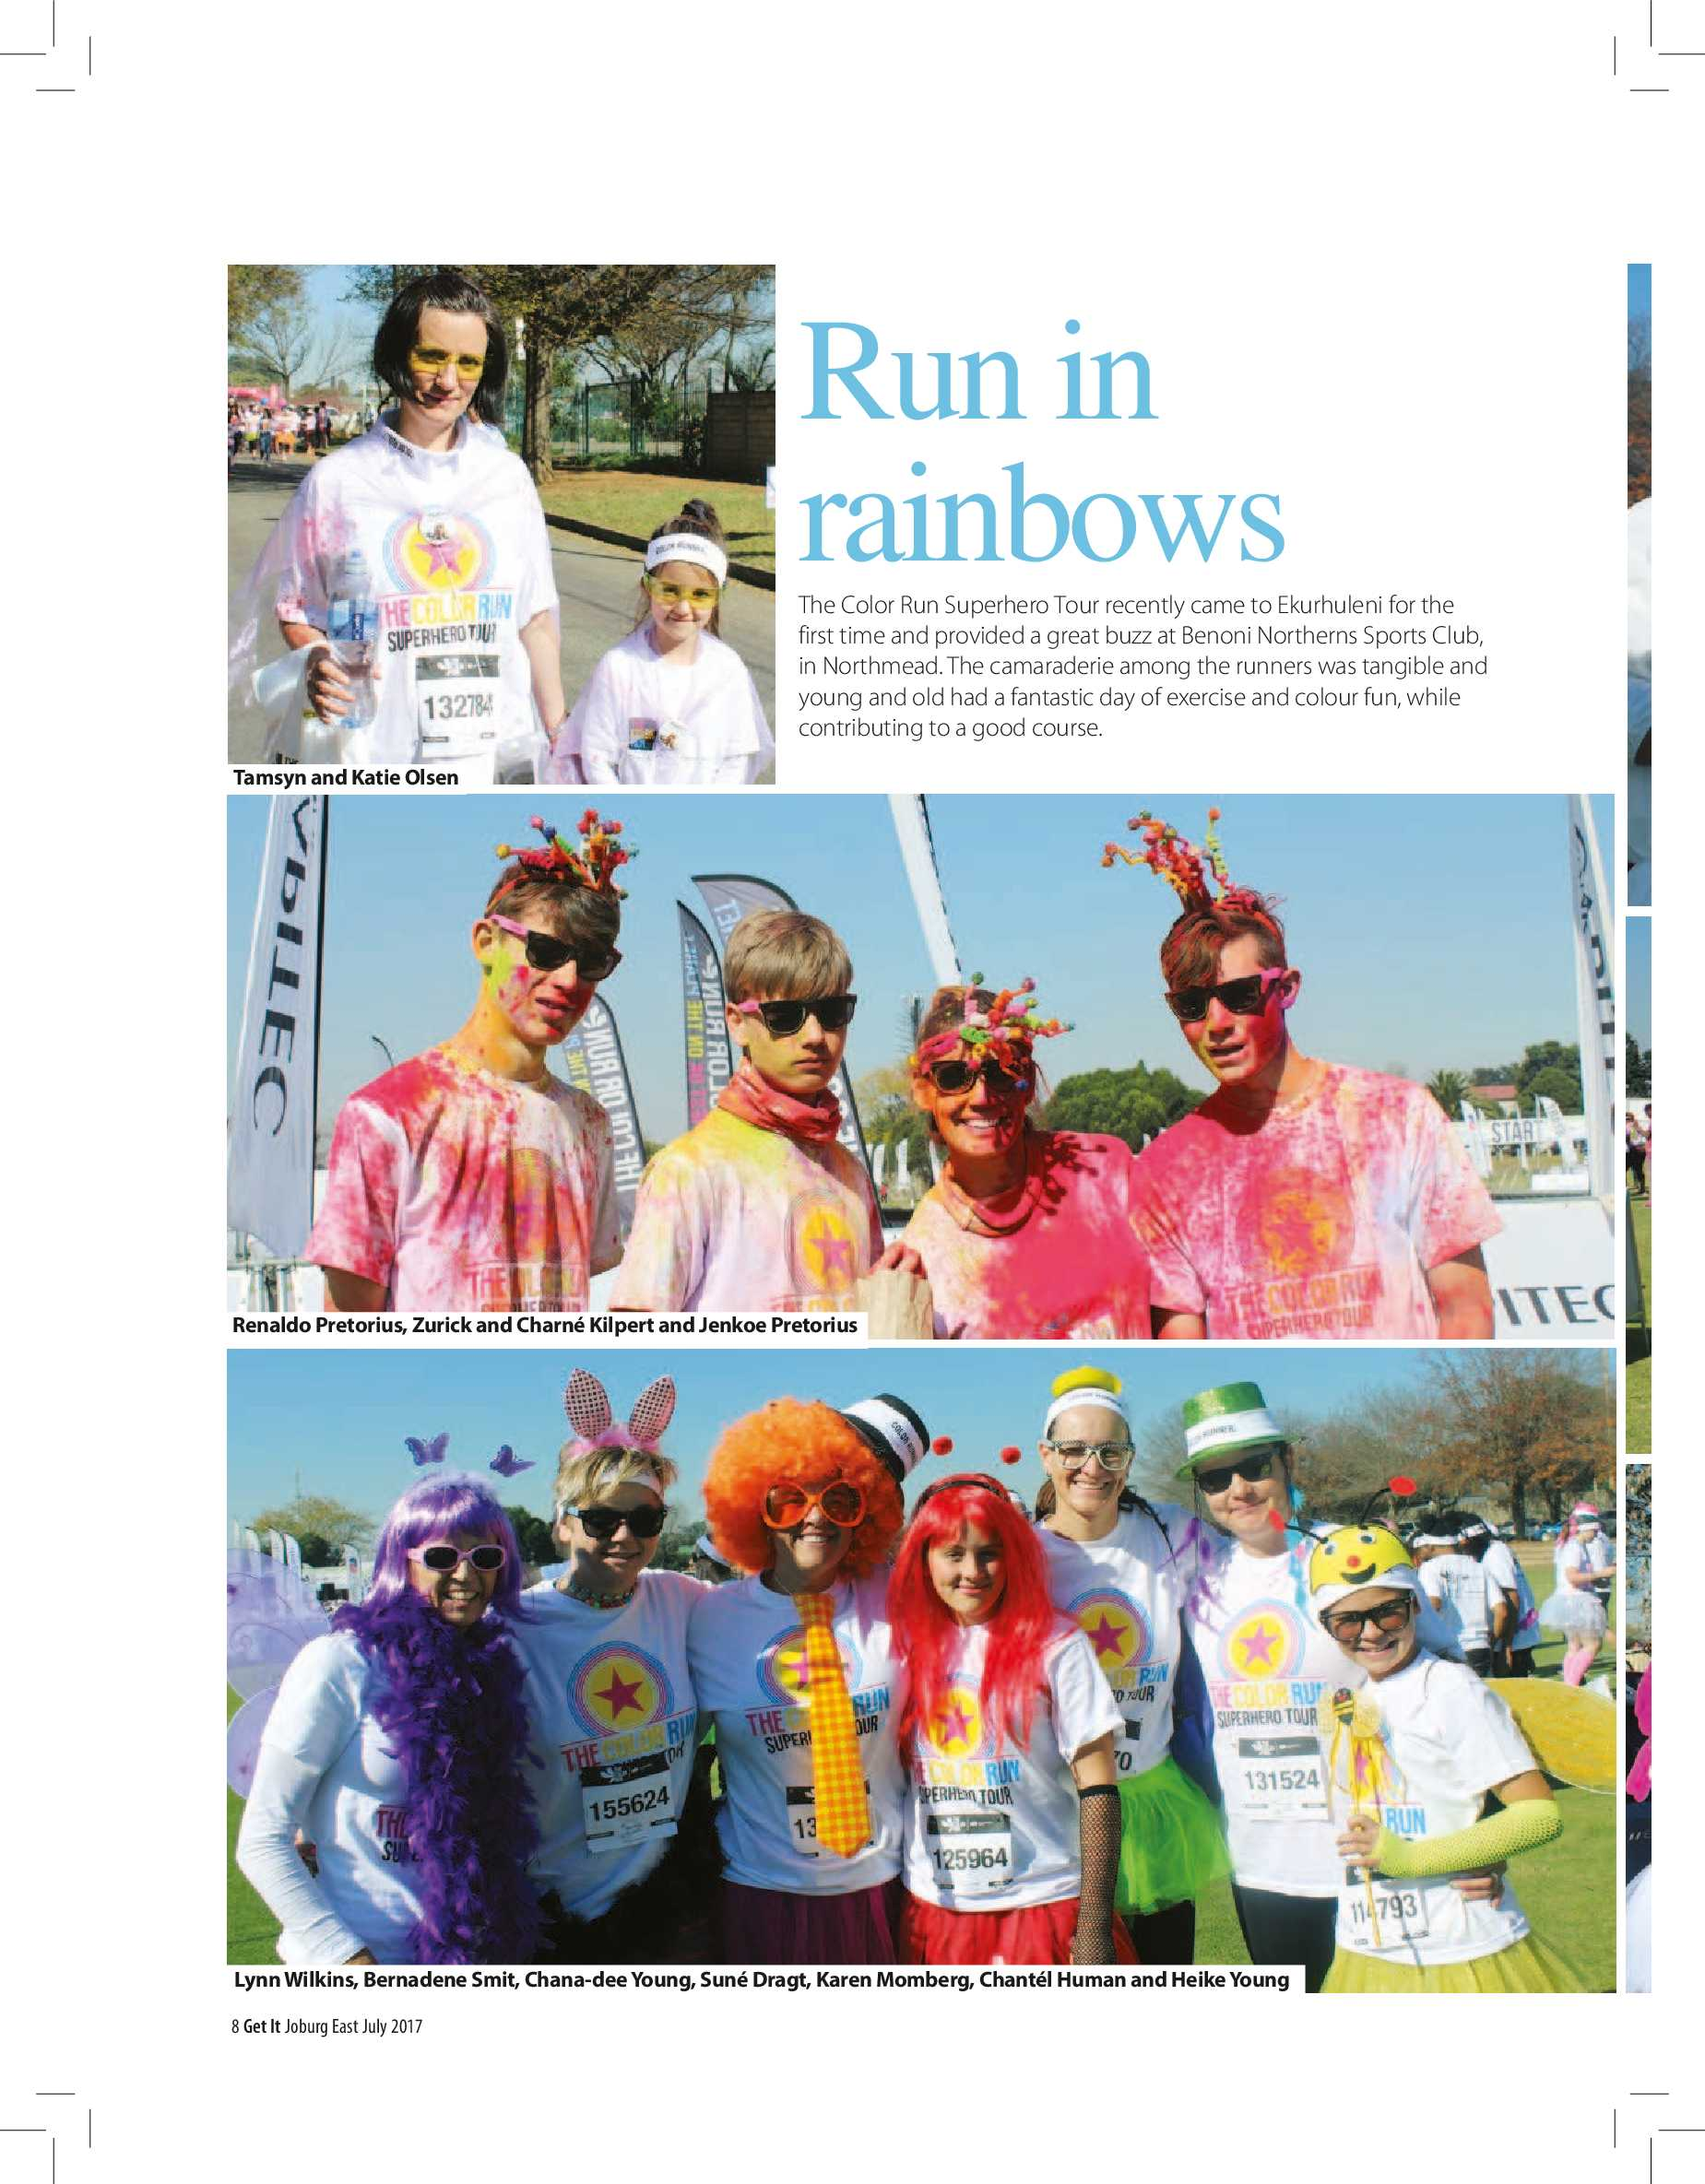 get-east-july-2017-epapers-page-8